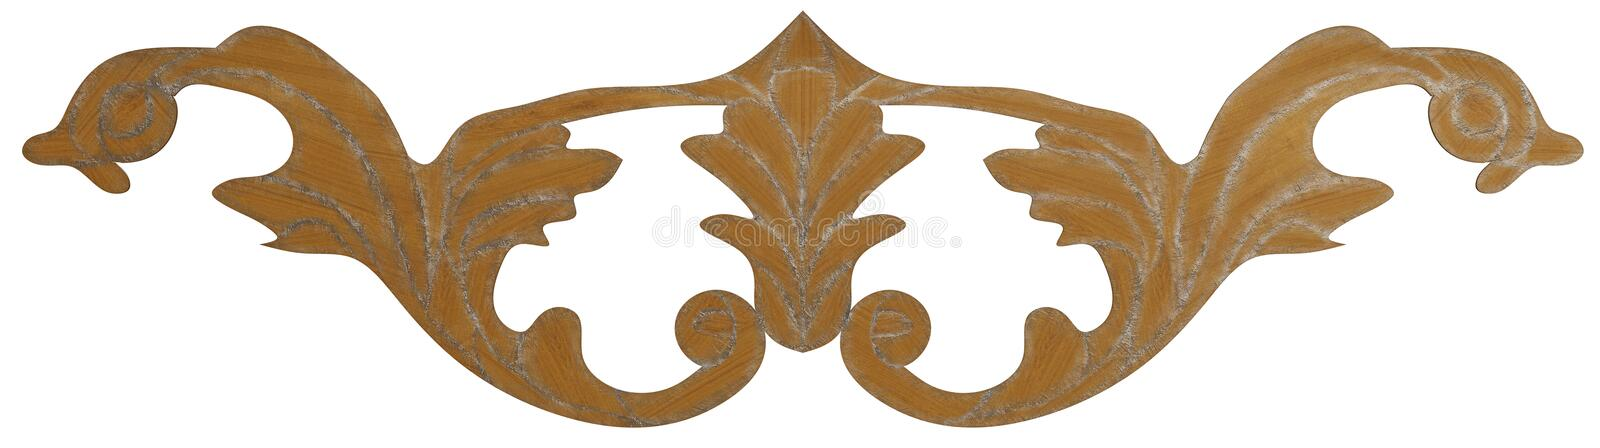 Classic veneer inlay. Detailed inlay of veneer of classical elements for furniture, floors, ceilings and walls royalty free illustration